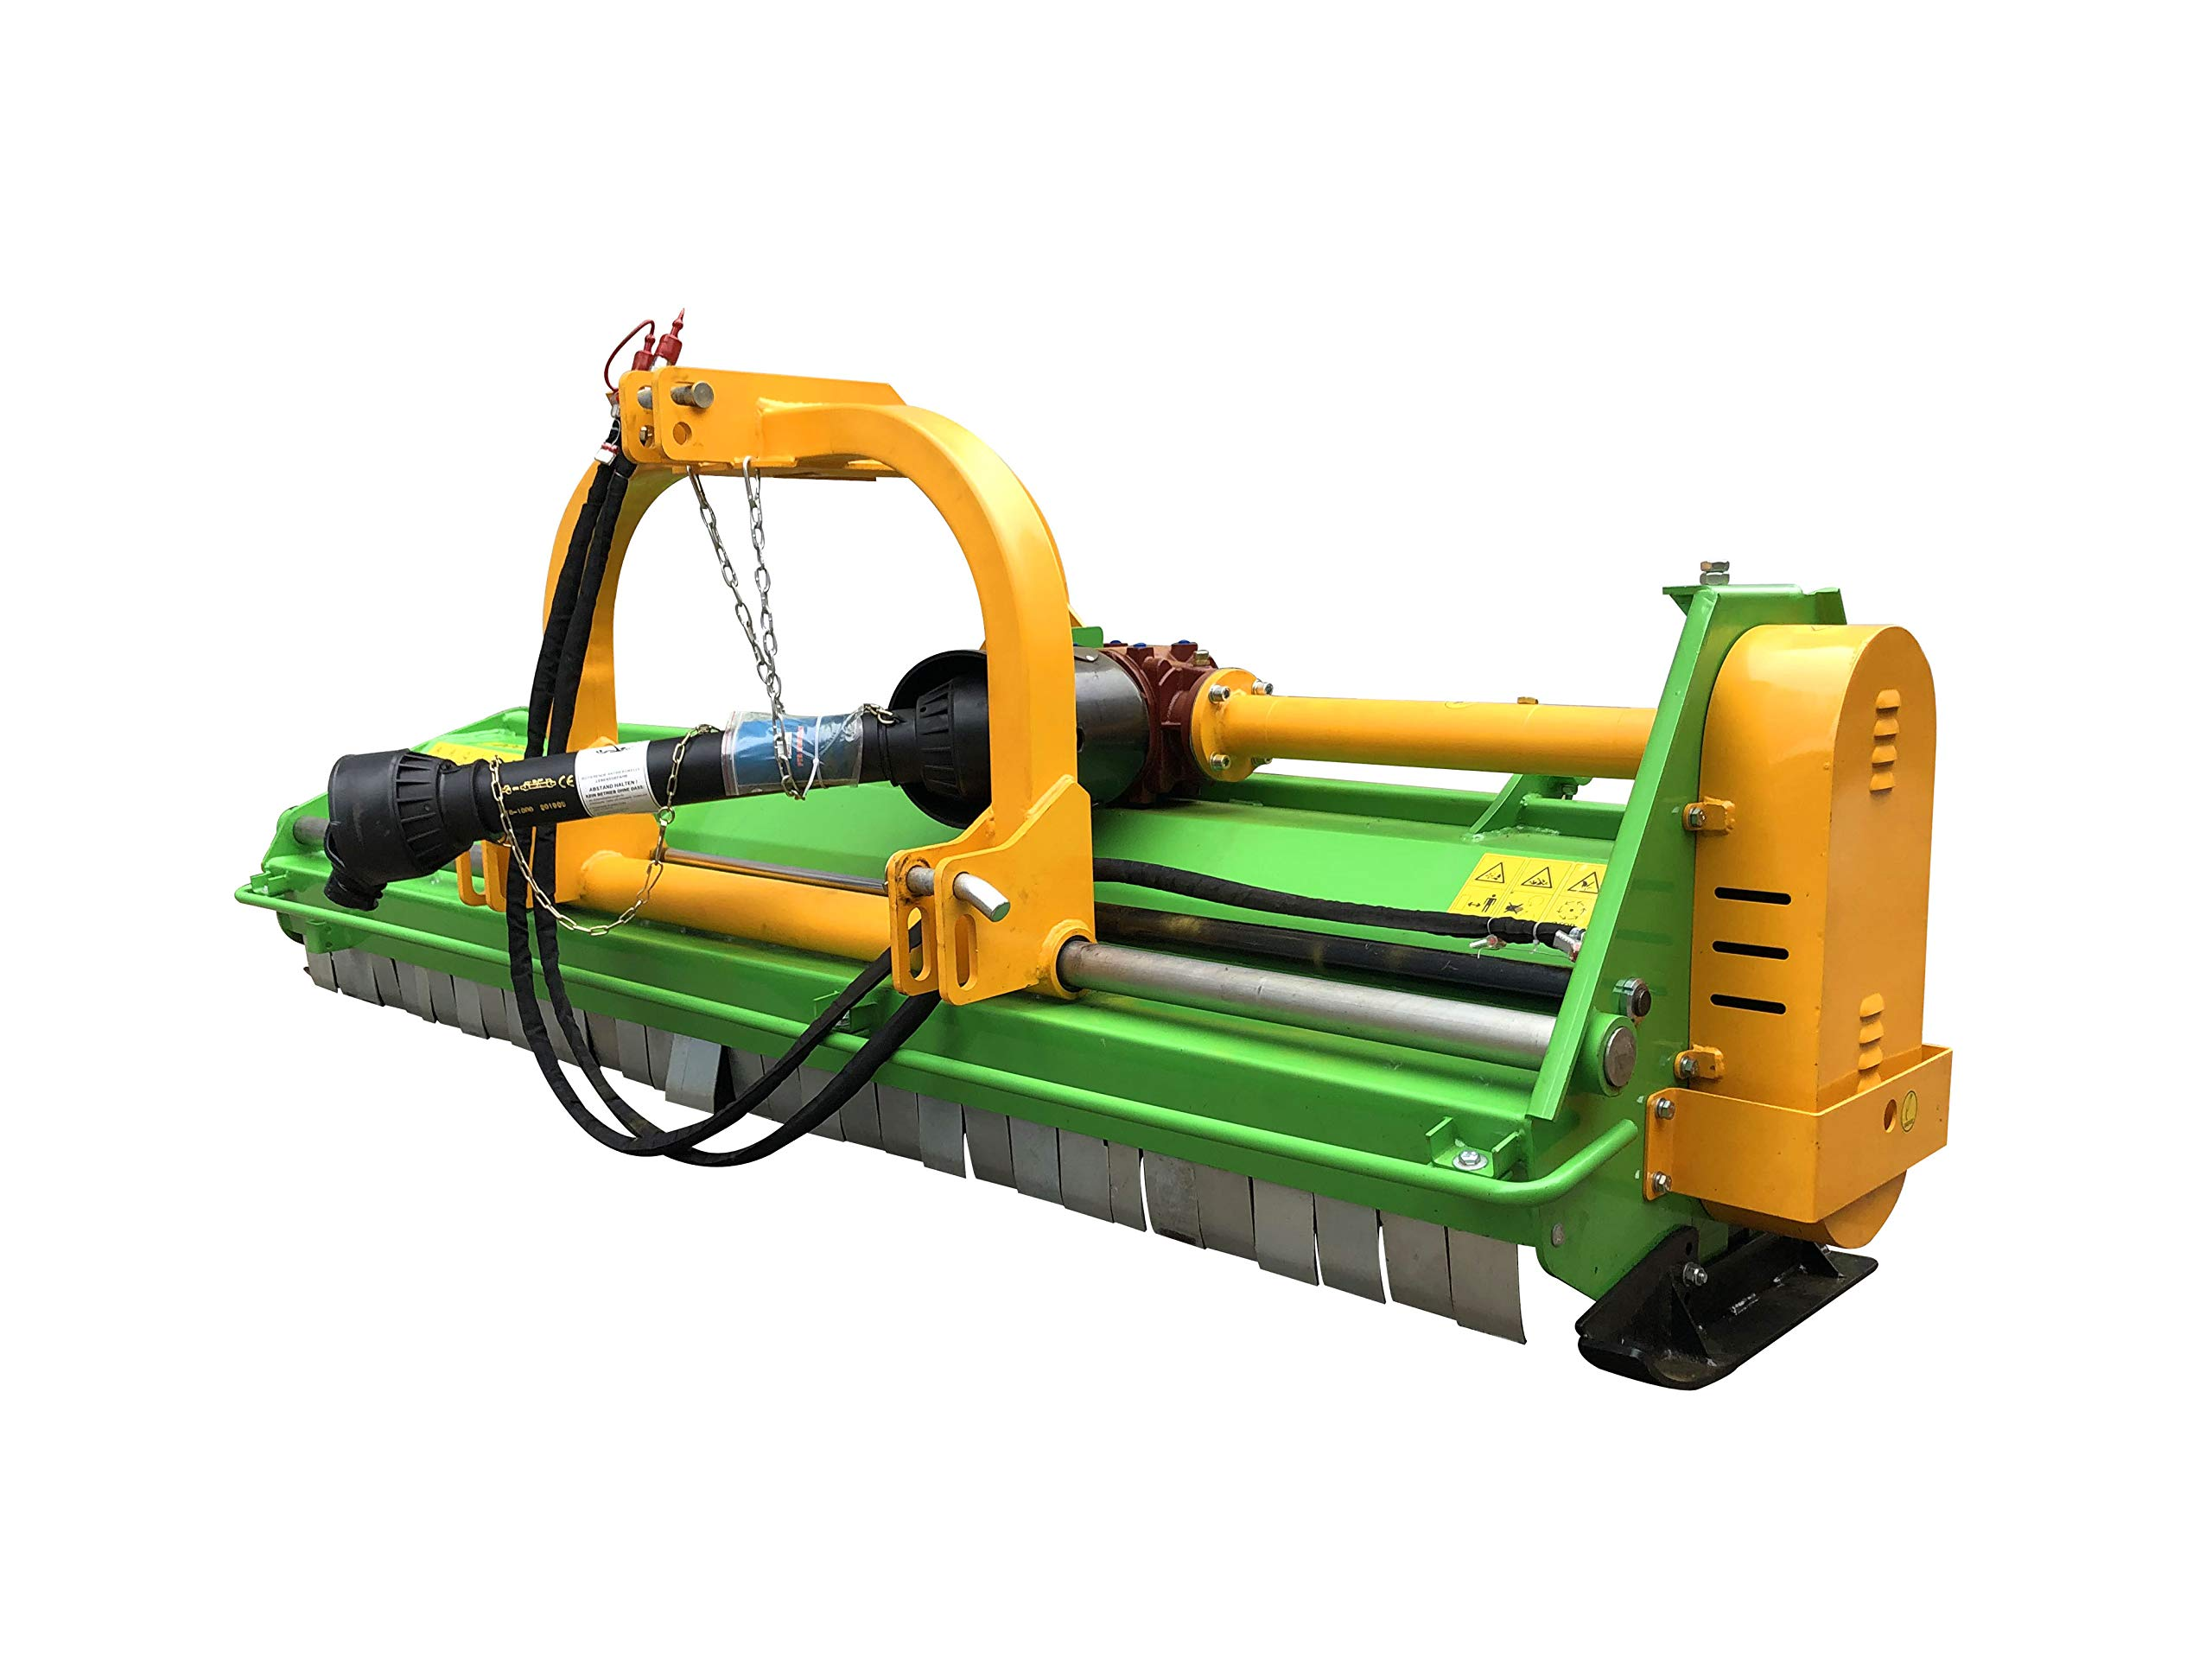 Nova Tractor 95'' Heavy Duty Flail Mower, for Tractor 70 to 120 HP, 3pt Cat II by Nova Tractor